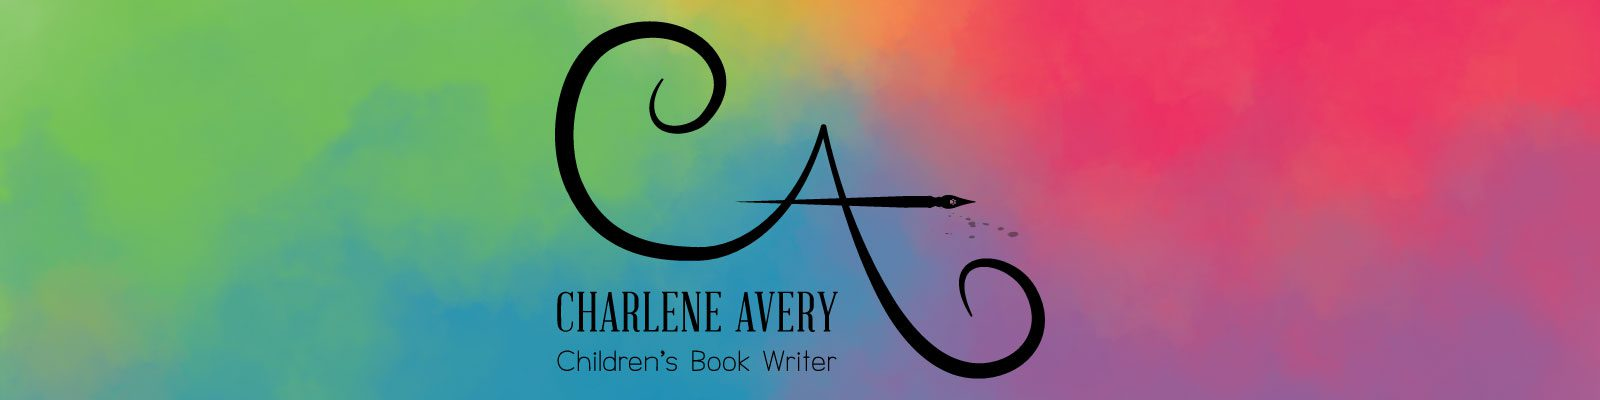 Charlene Avery author logo